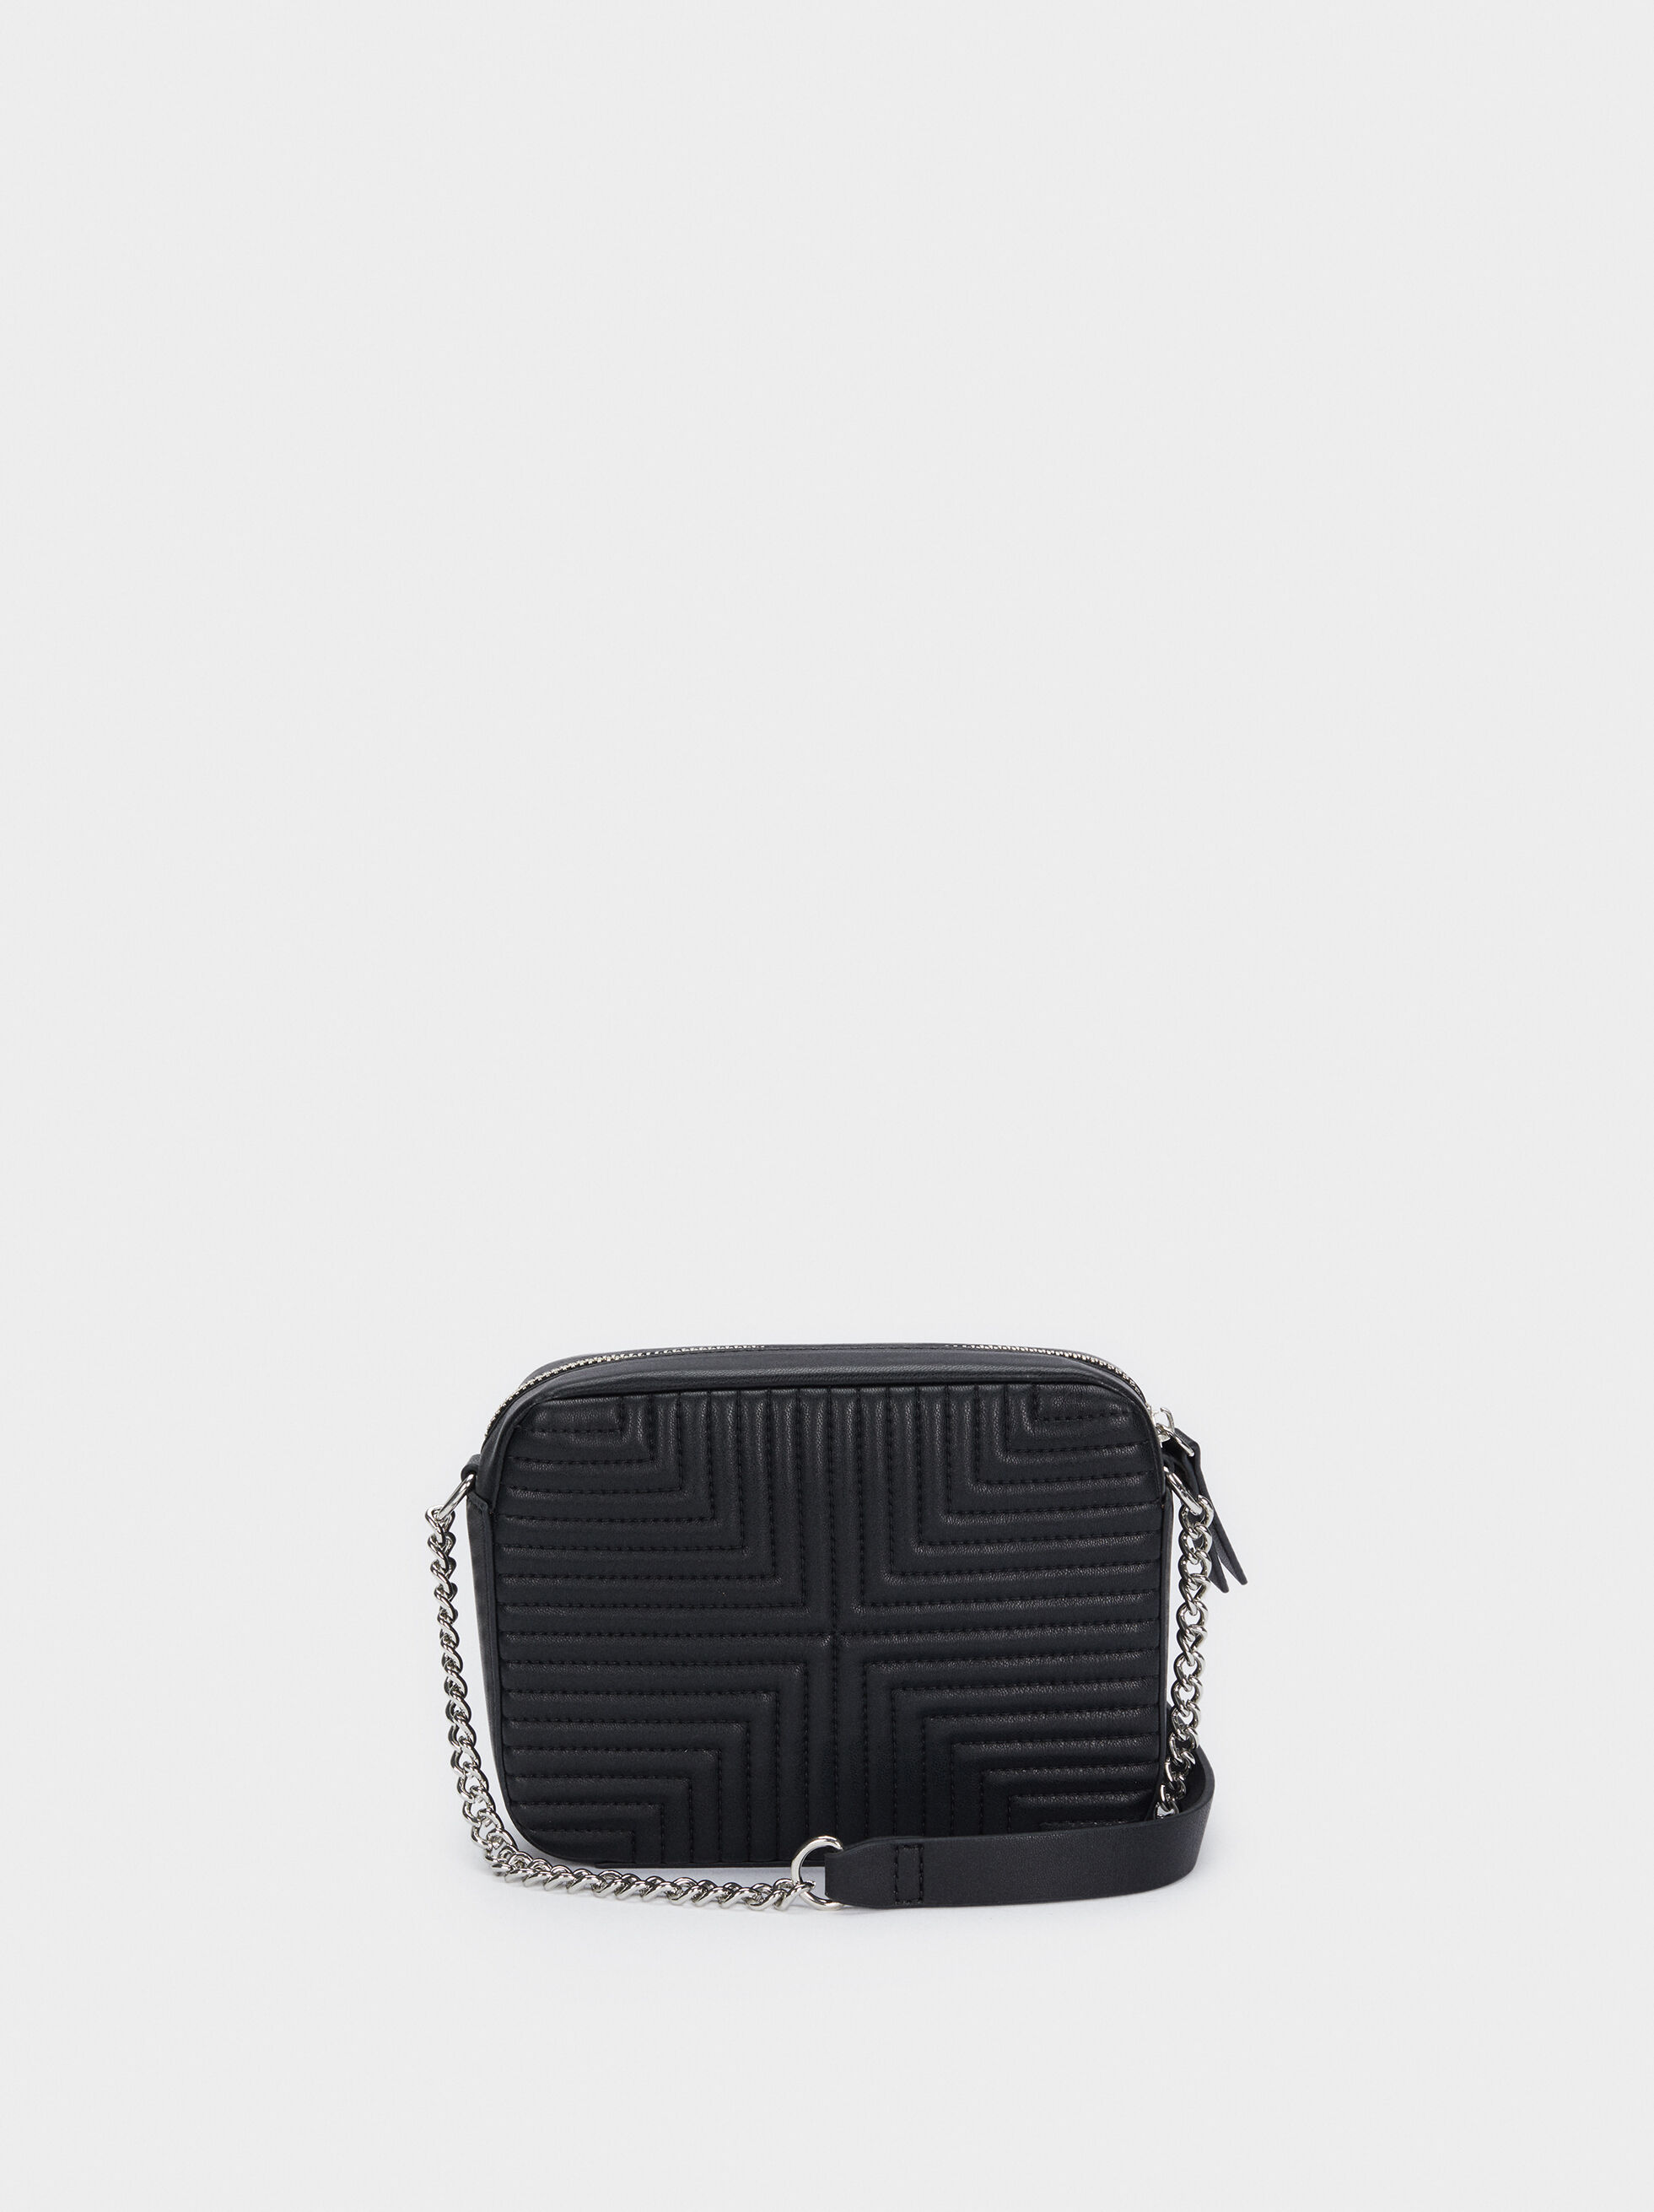 Crossbody Bag With Contrasting Chain Handle, Black, hi-res